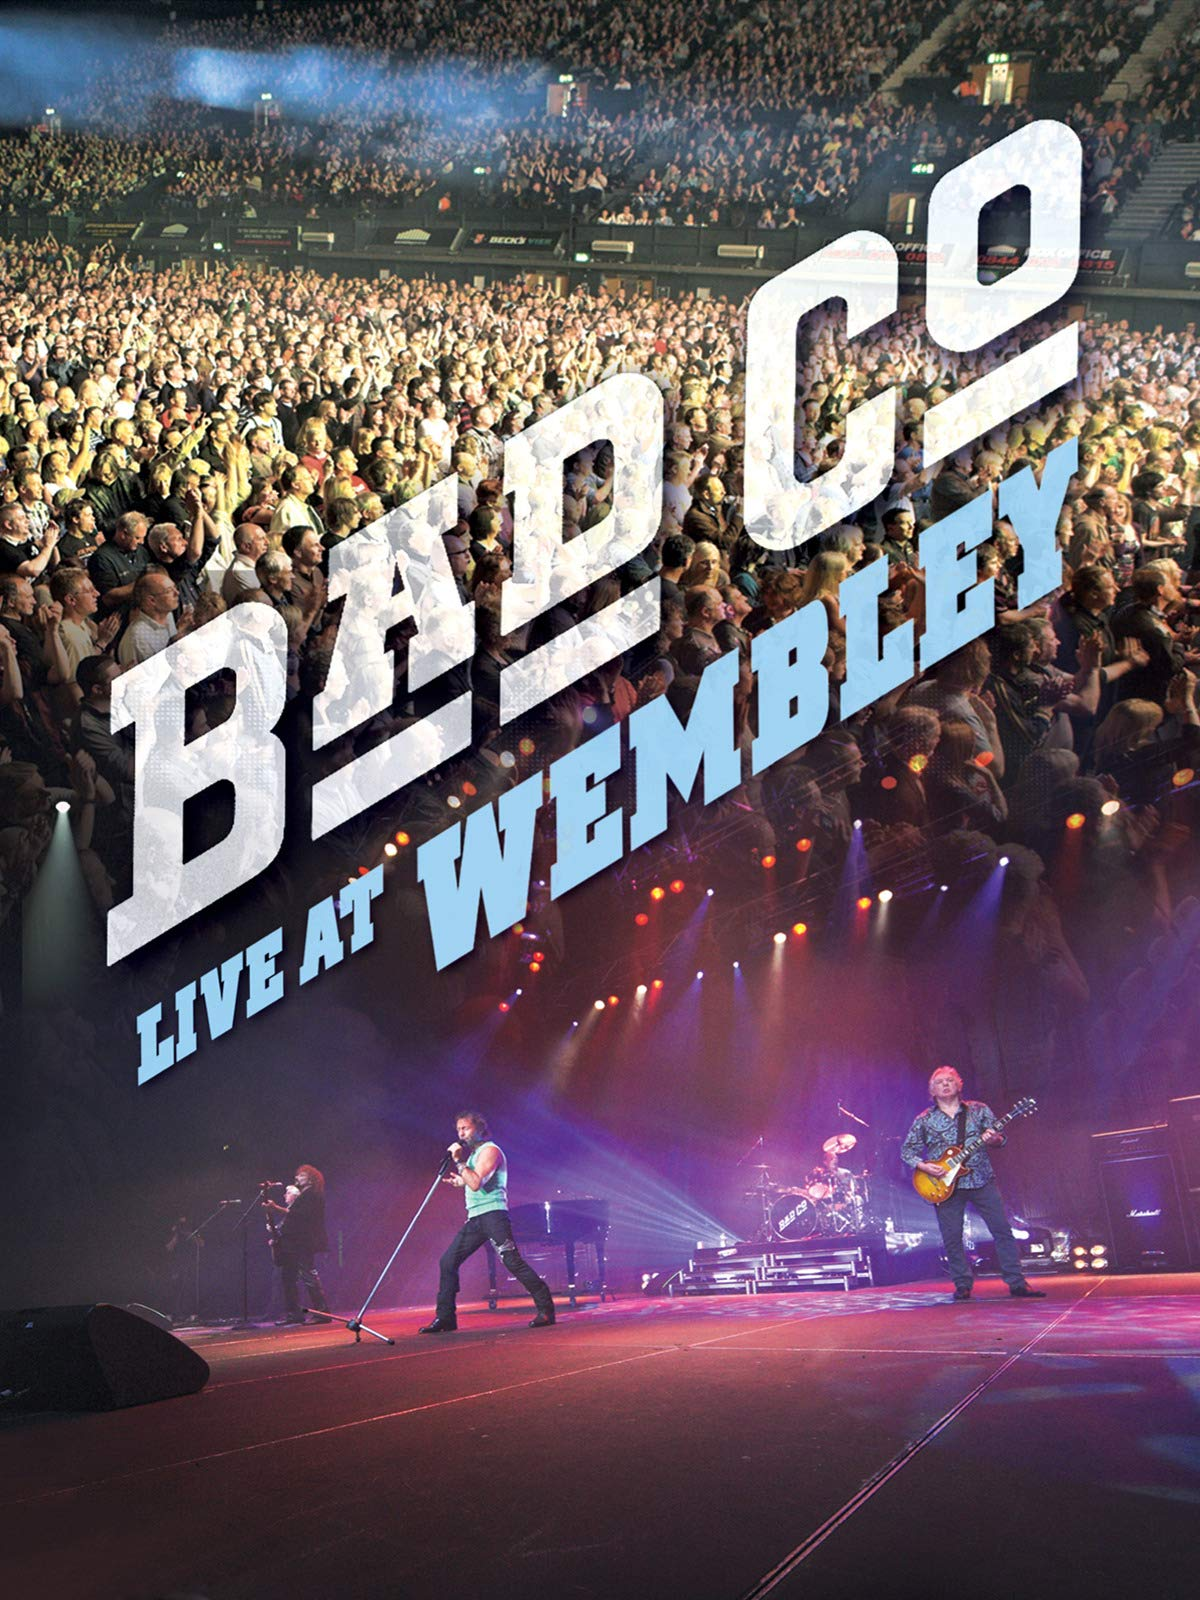 Bad Company - Live At Wembley on Amazon Prime Video UK